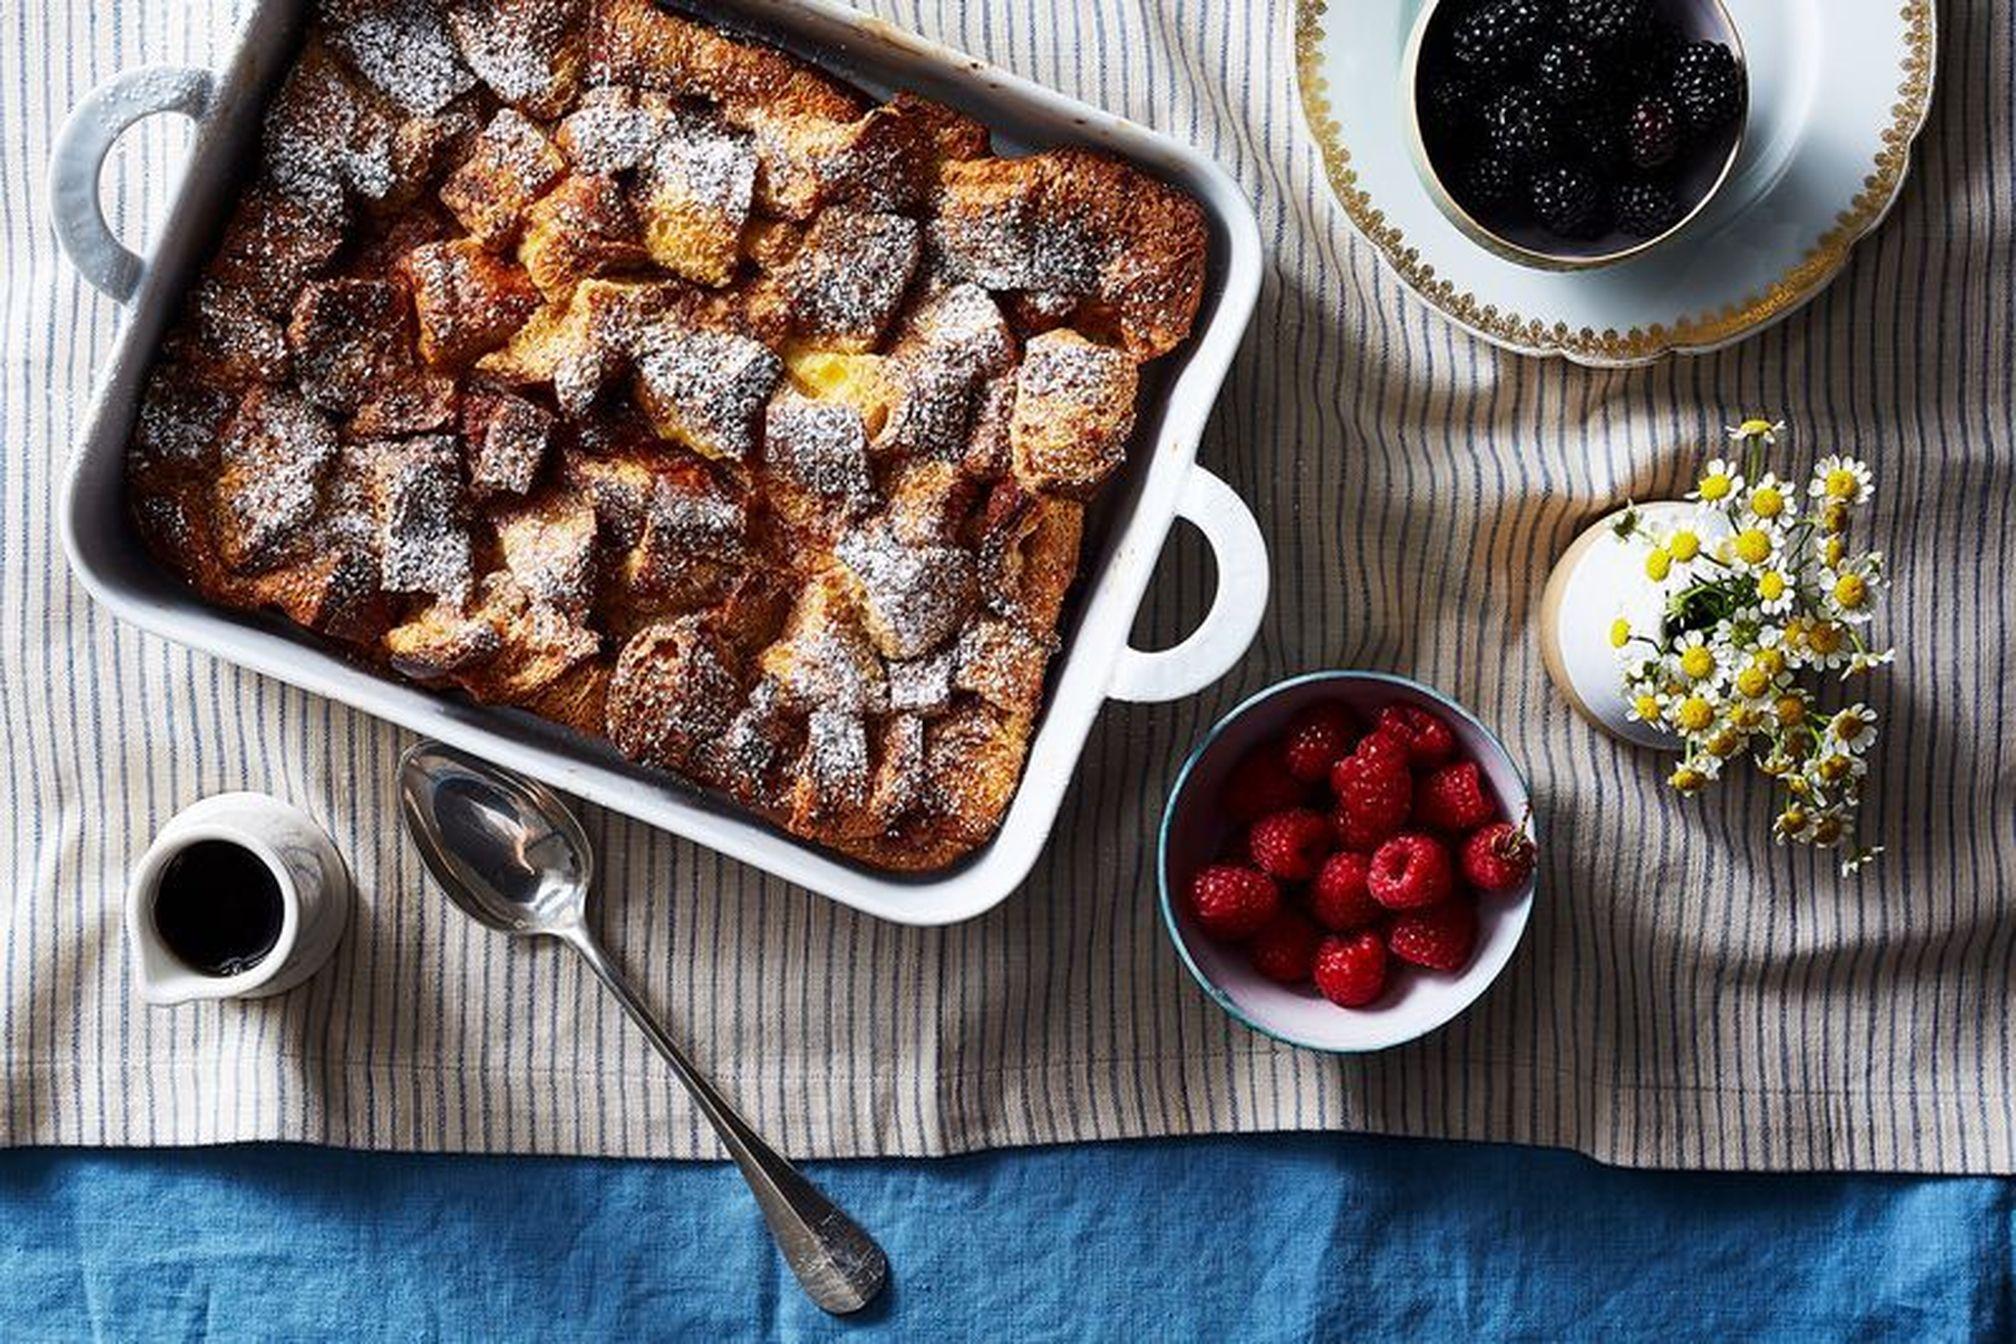 Best Challah French Toast Recipe How To Make Baked Challah French Toast Casserole